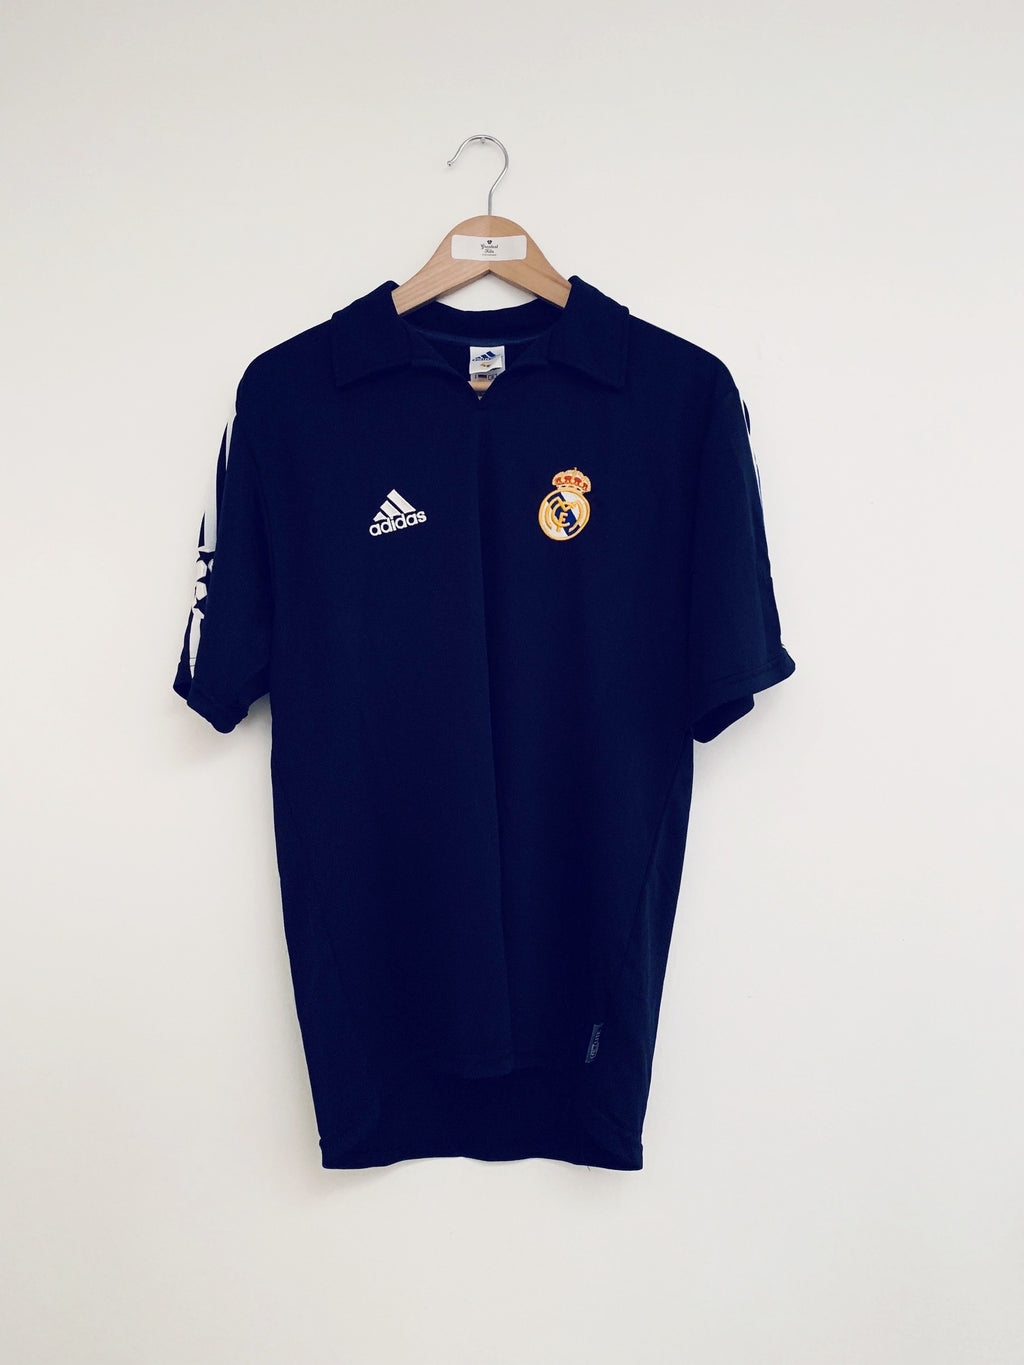 2001/02 Real Madrid Away CL Centenary Shirt (S) 9.5/10